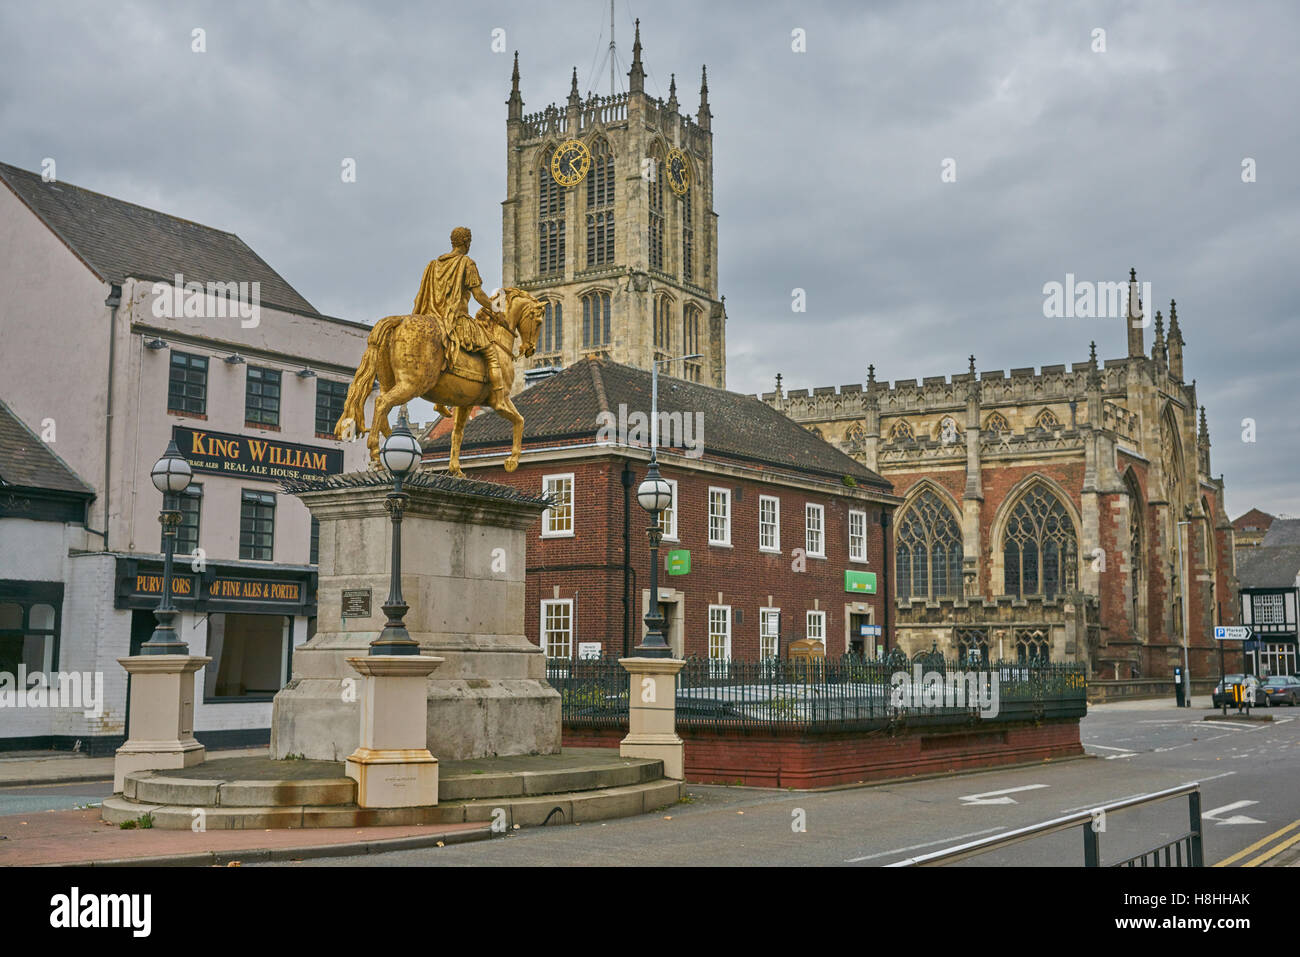 Statue of King William III  Hull. - Stock Image